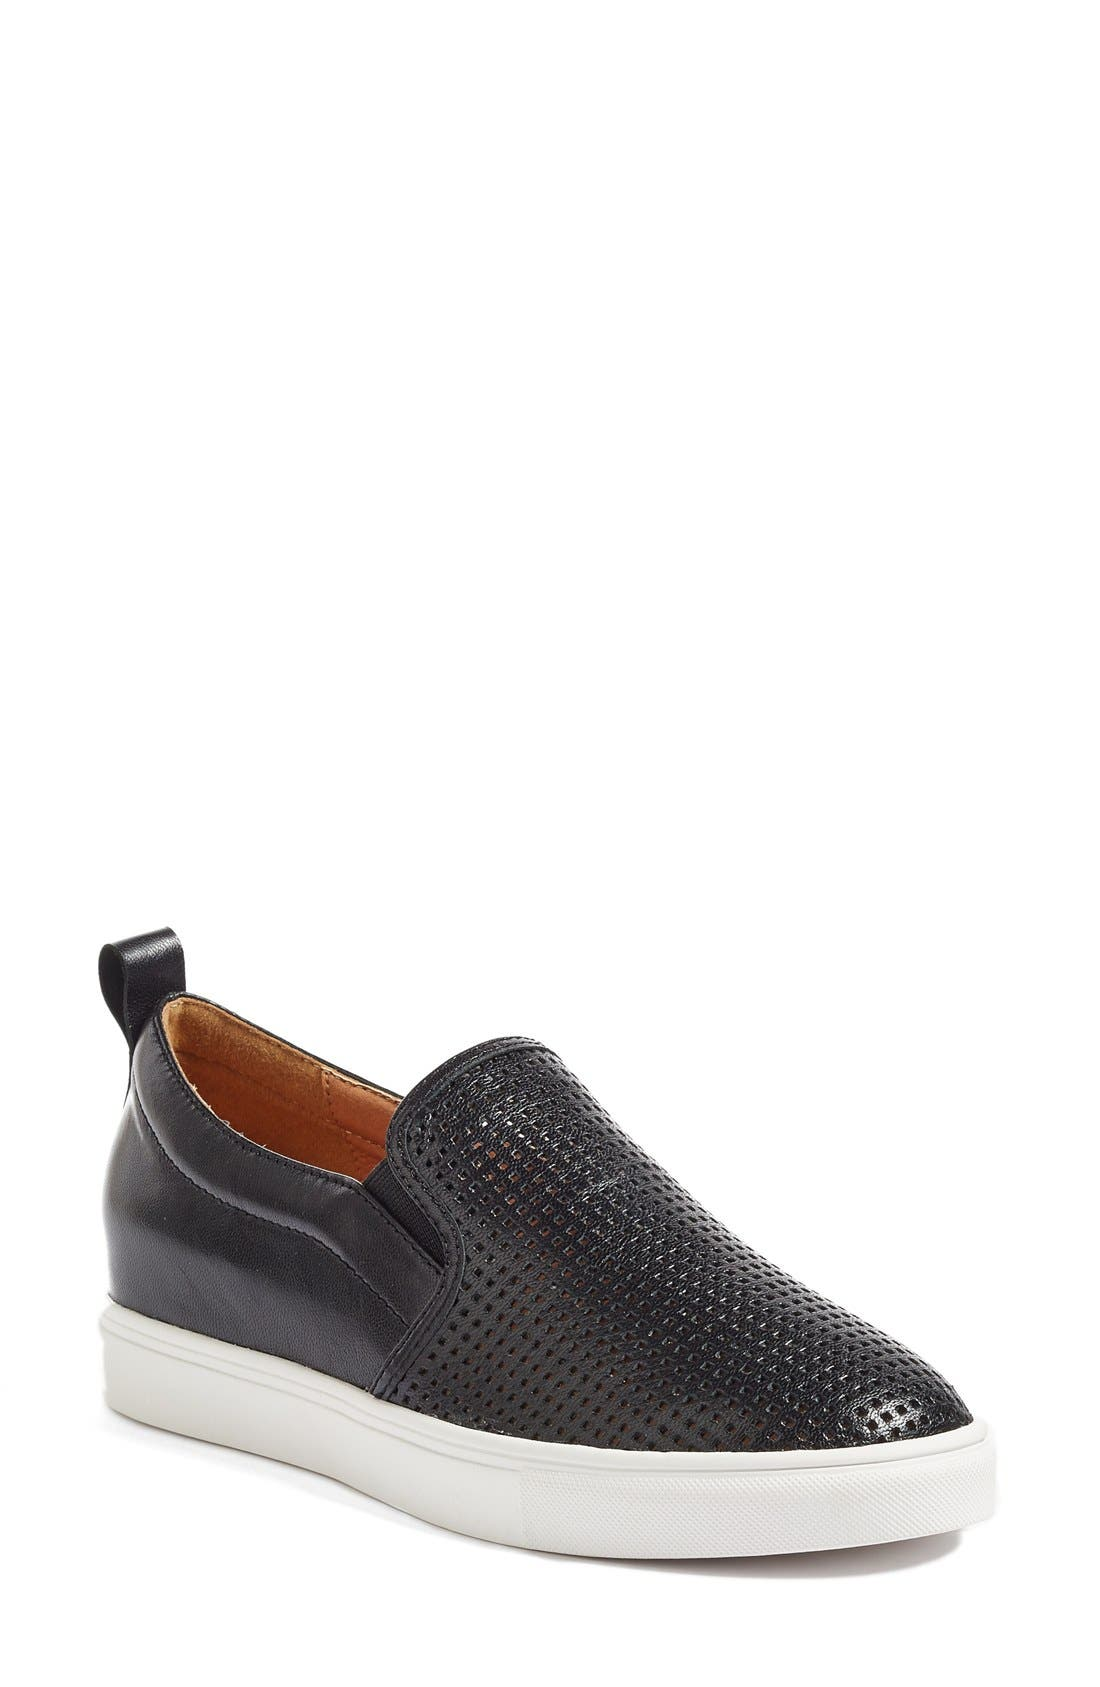 Eden Perforated Slip-On Sneaker,                         Main,                         color,